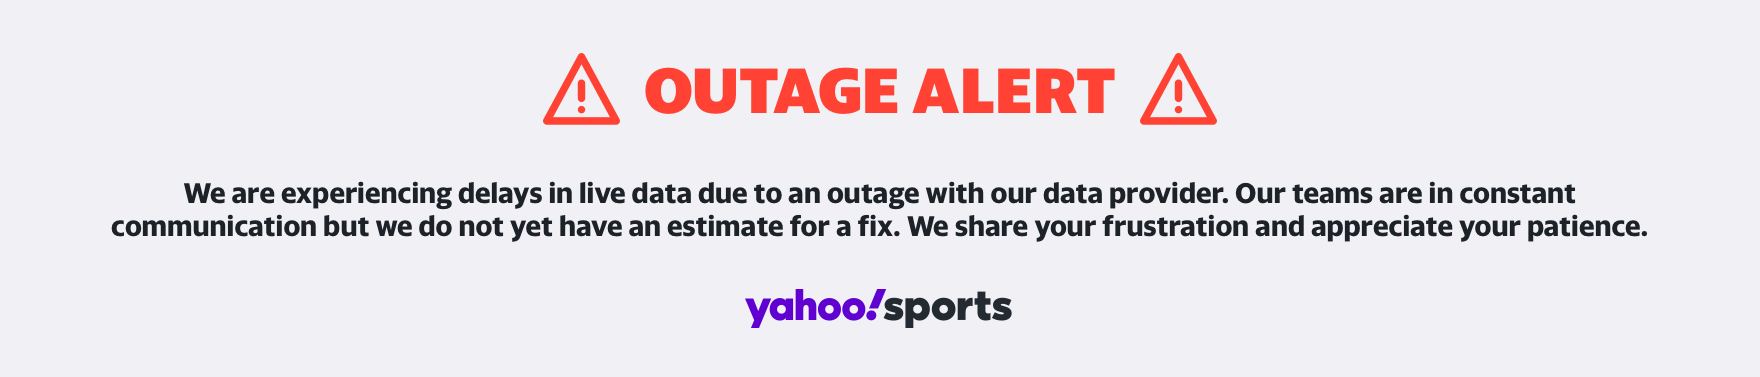 We are experiencing delays in live data due to an outage with our data provider. Our teams are in constant communication but we do not yet have an estimate for a fix.  We share your frustration and appreciate your patience.